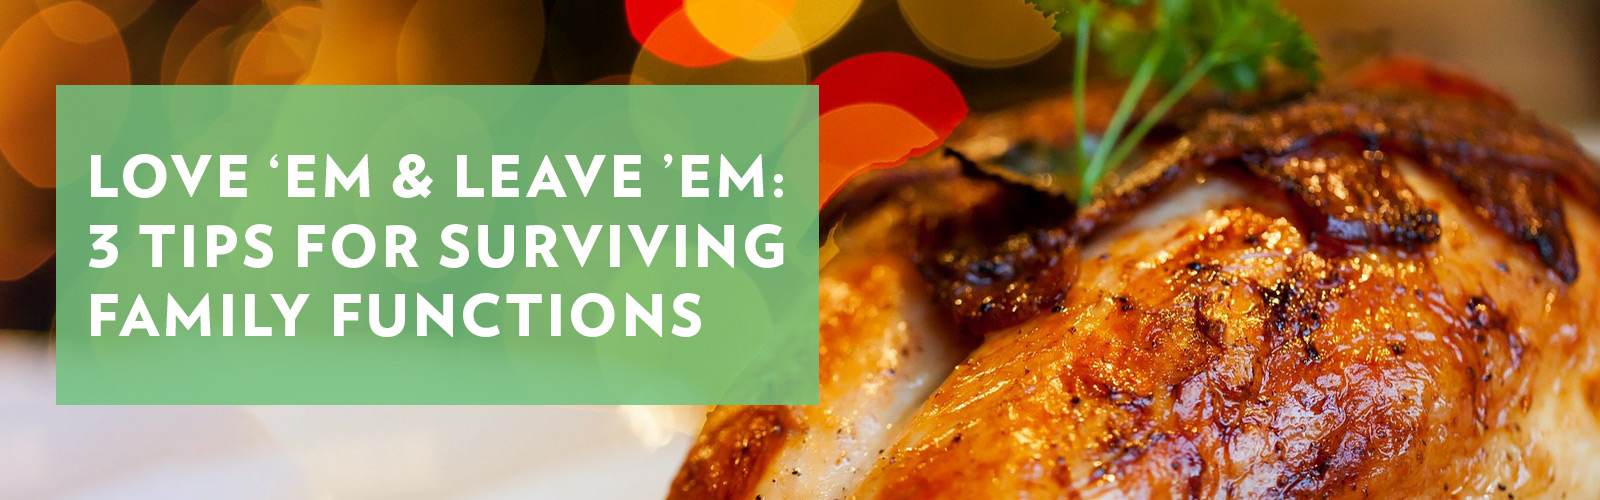 Love Em & Leave Em : 3 Tips for Surviving Family Functions